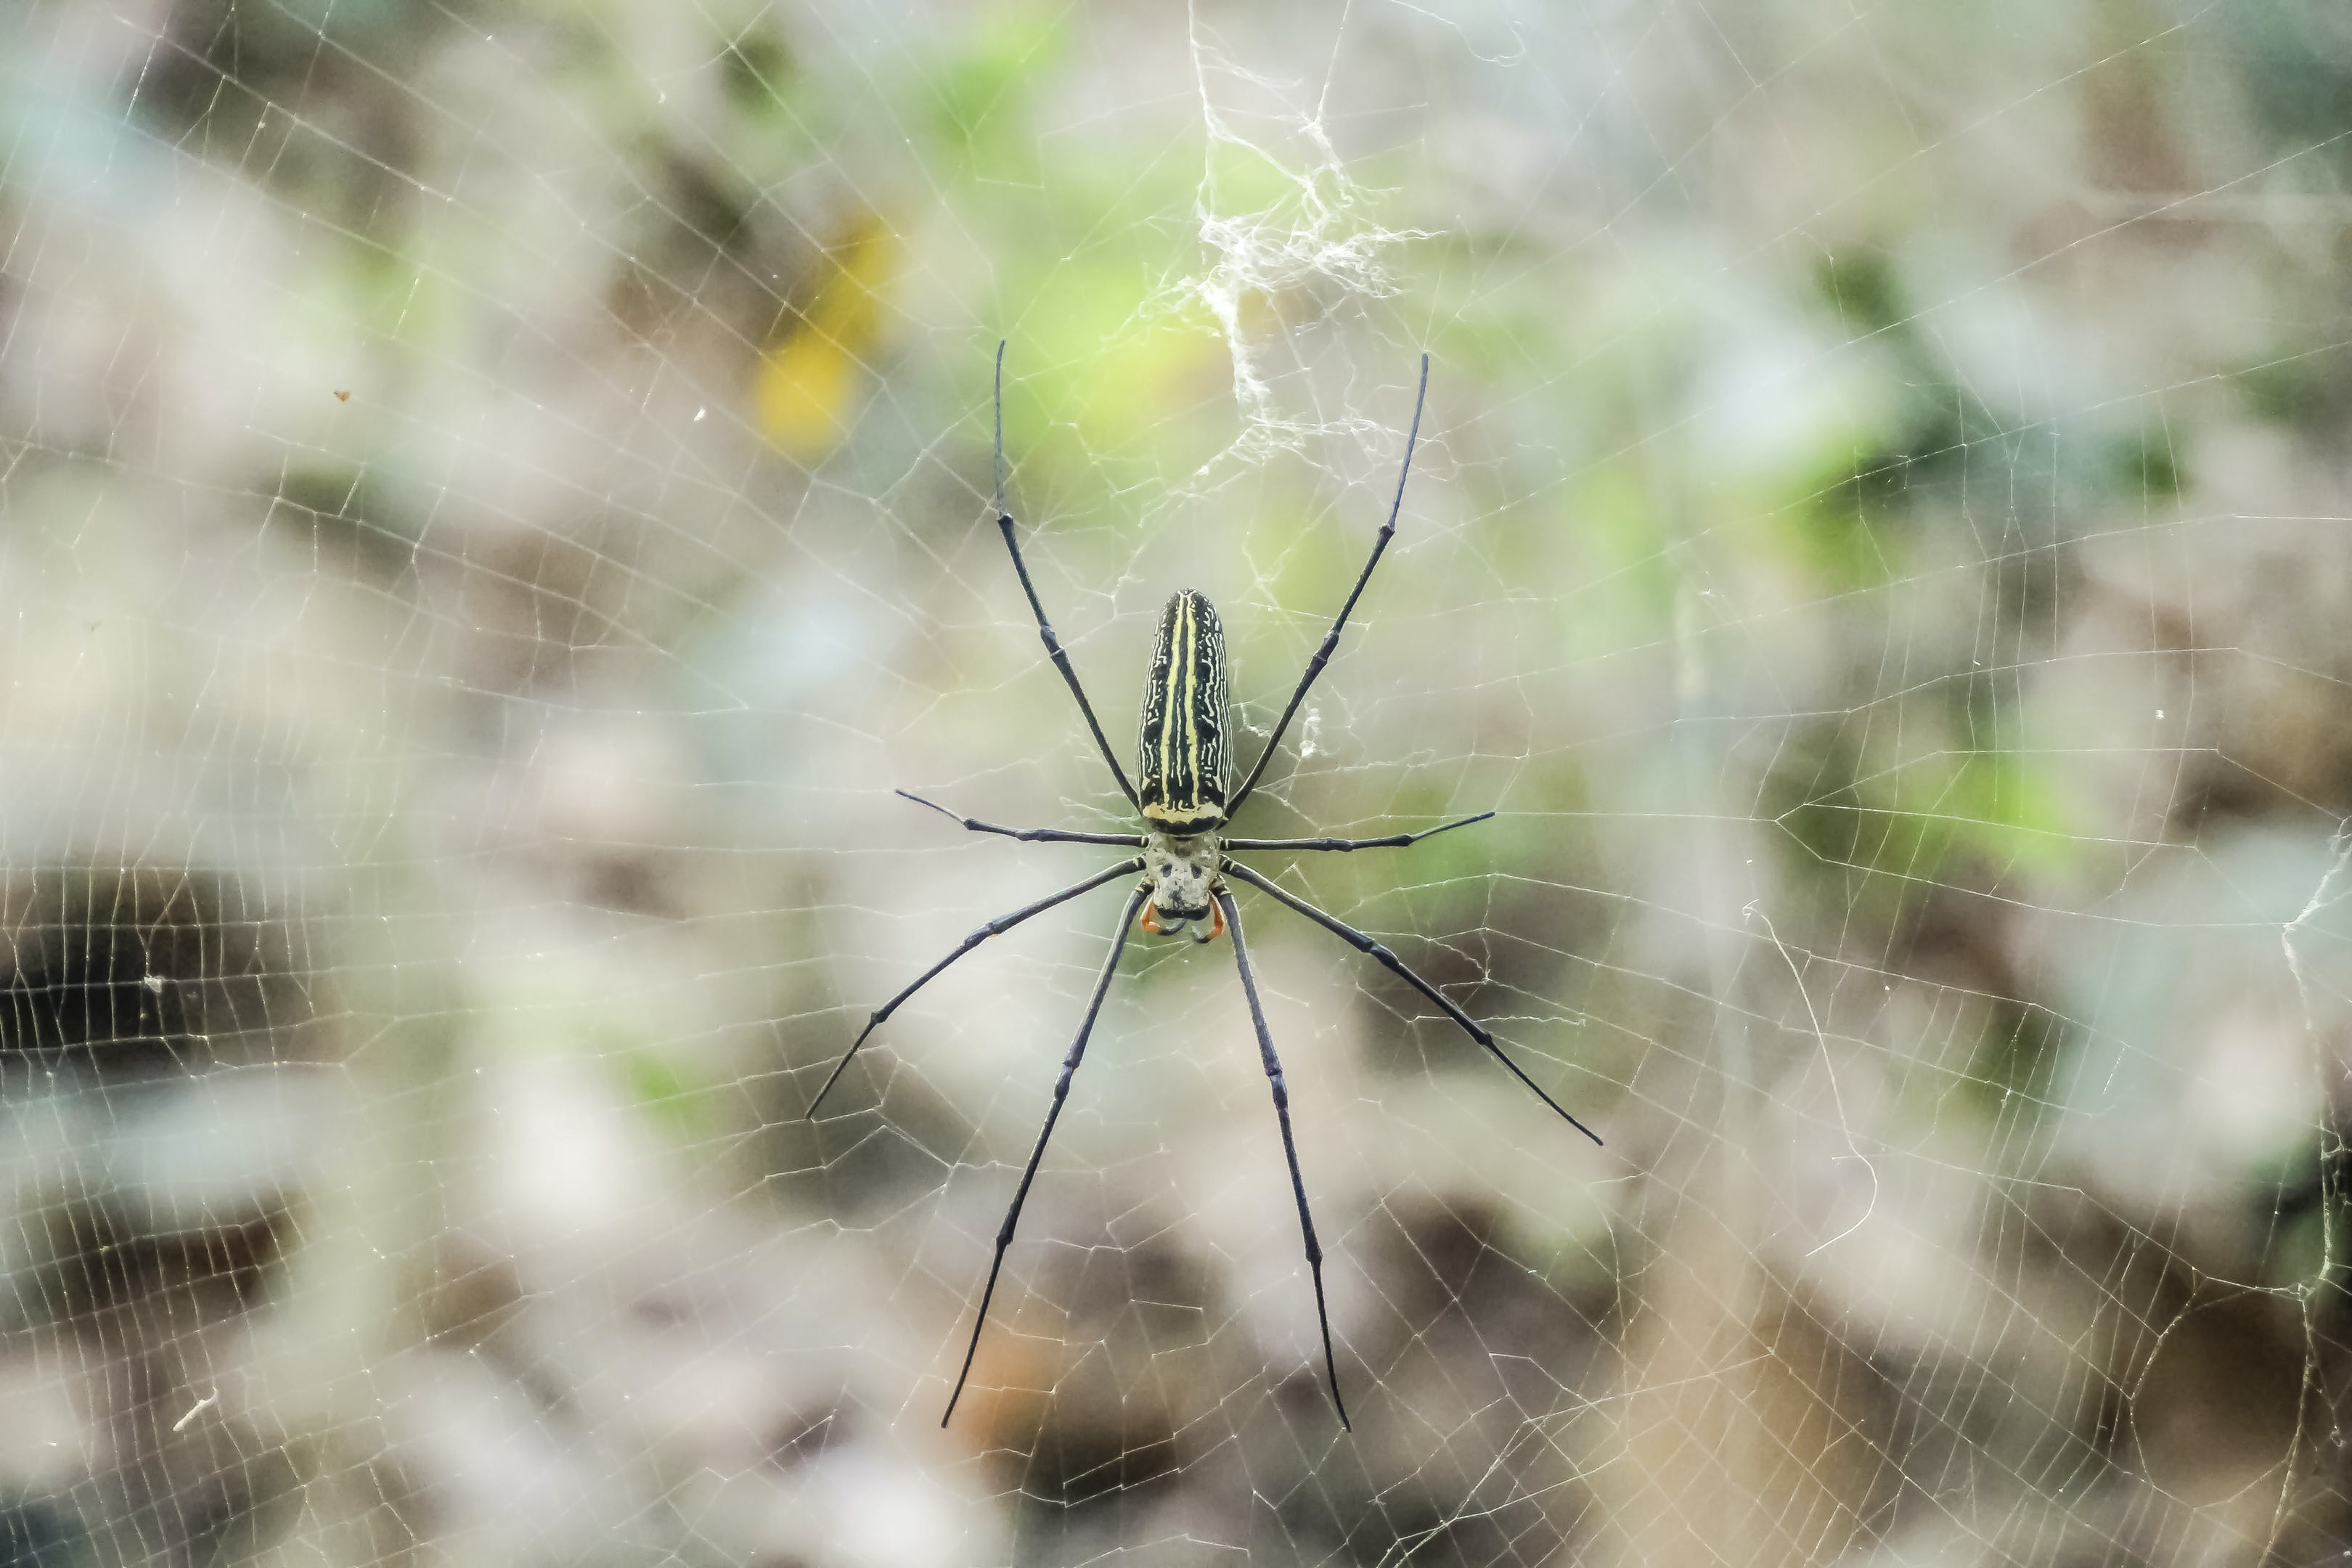 Free stock photo of nature photography, spider